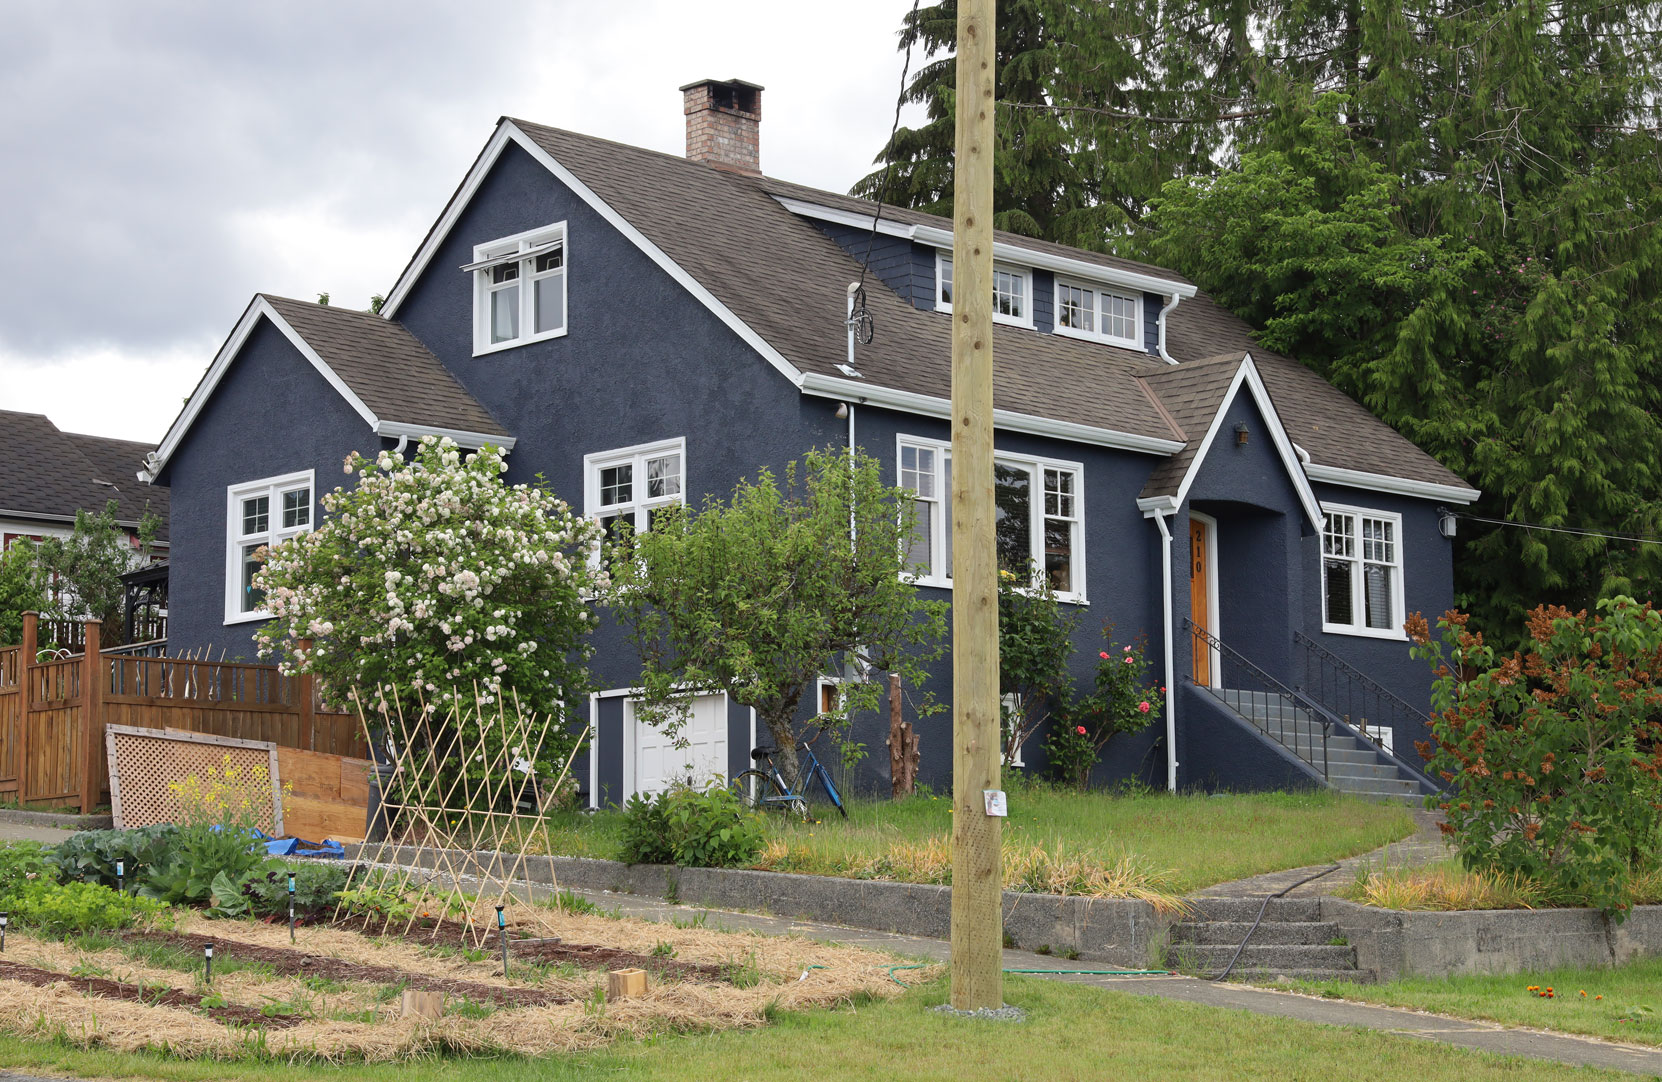 210 2nd Avenue, Ladysmith, BC. Built in 1944.